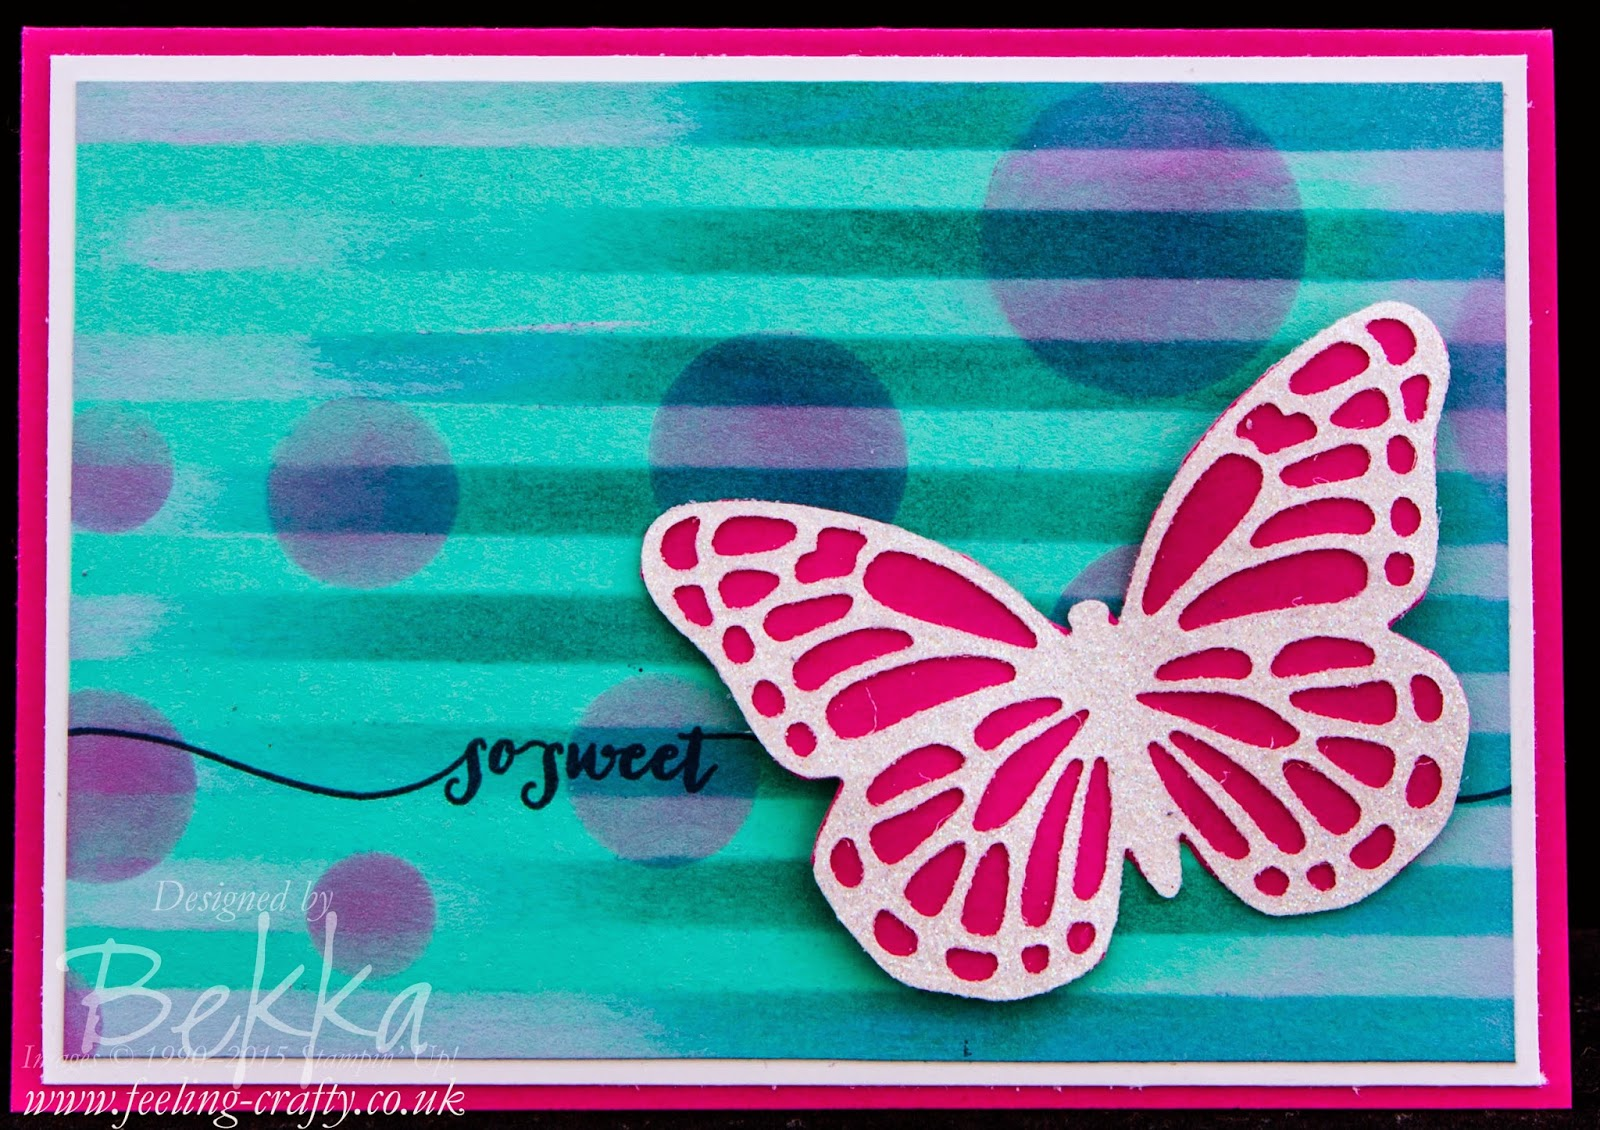 So Sweet Butterfly Card with a Stenciled Background by Stampin' Up! UK Independent Demonstrator Bekka - check her blog for lots of cute ideas